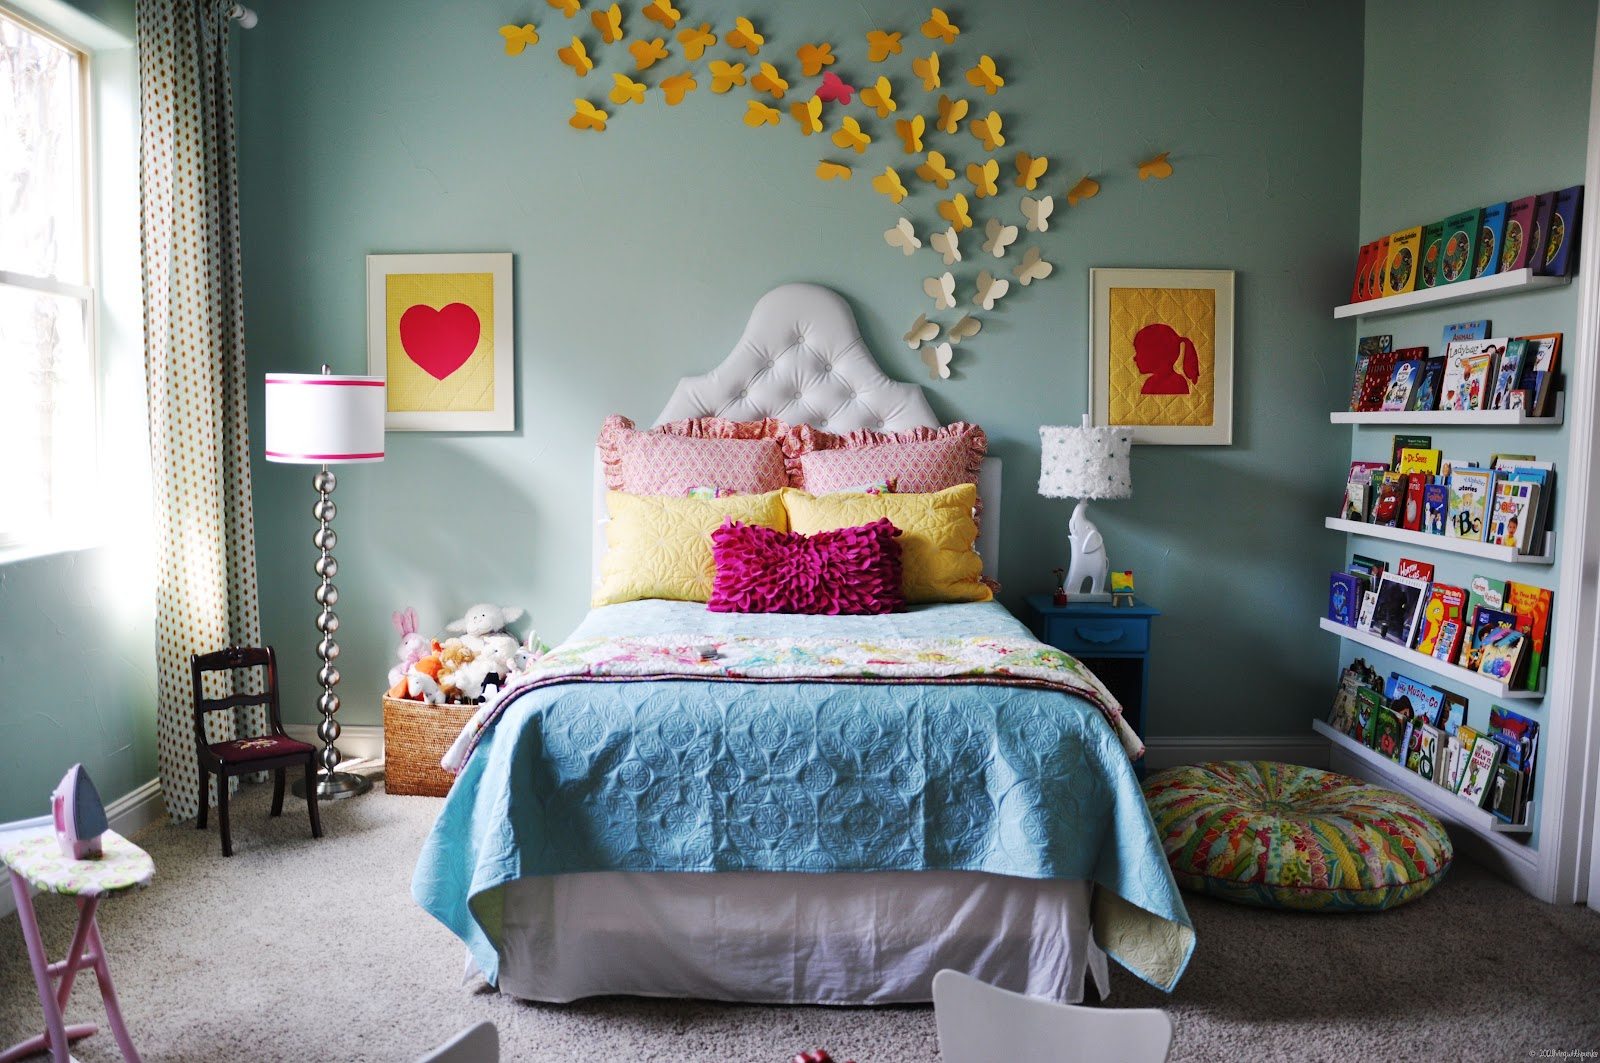 Big girl bedroom ideas - Designs for girls bedroom ...